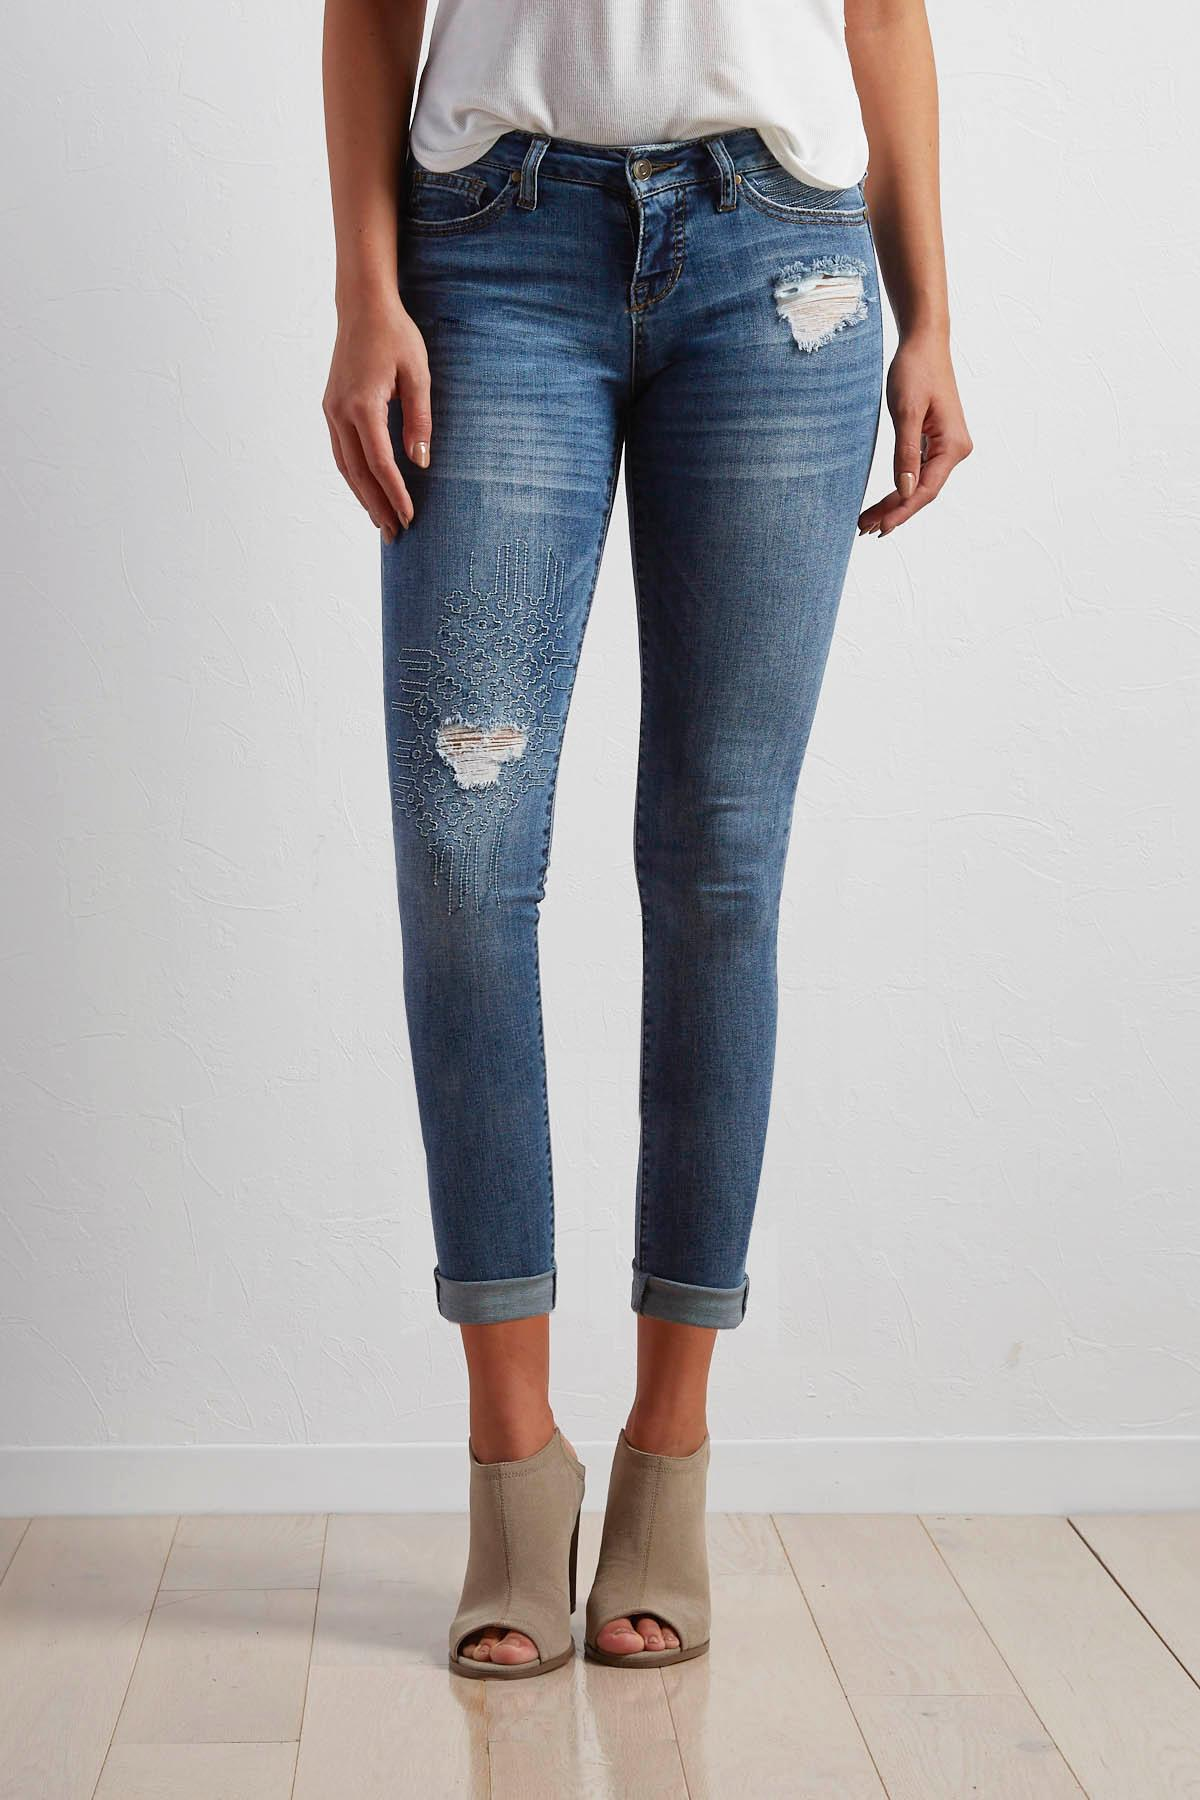 Embroidered Distressed Girlfriend Jeans